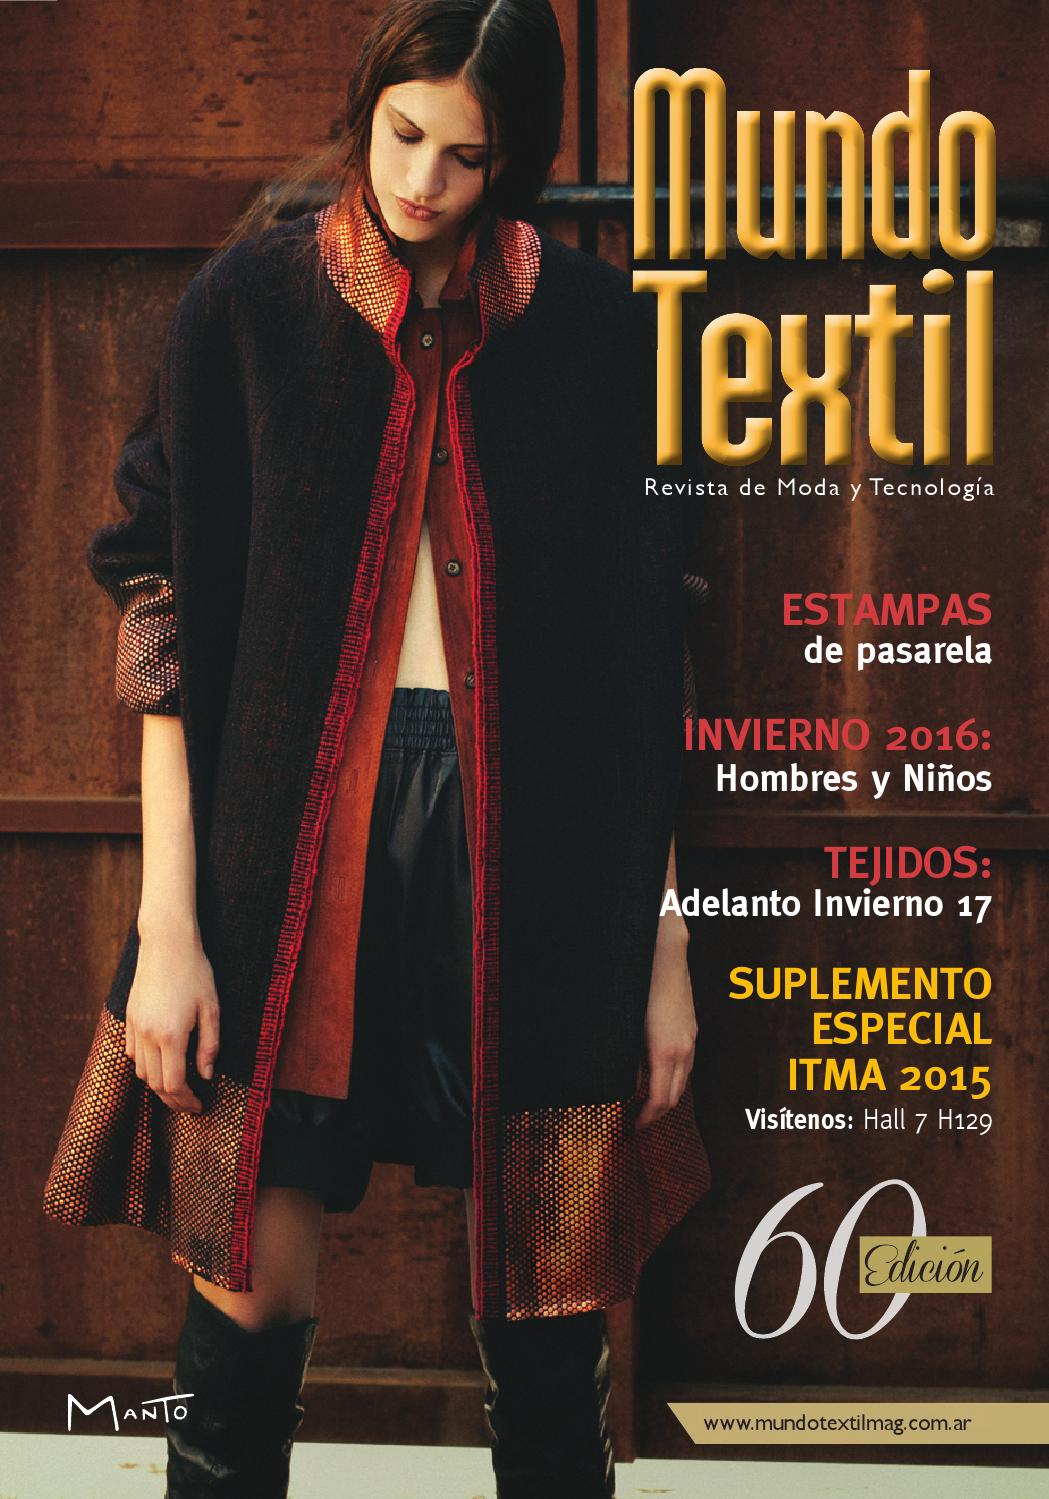 new product 4620d d44c2 Mundo textil 60 by Andrea Lippi - issuu